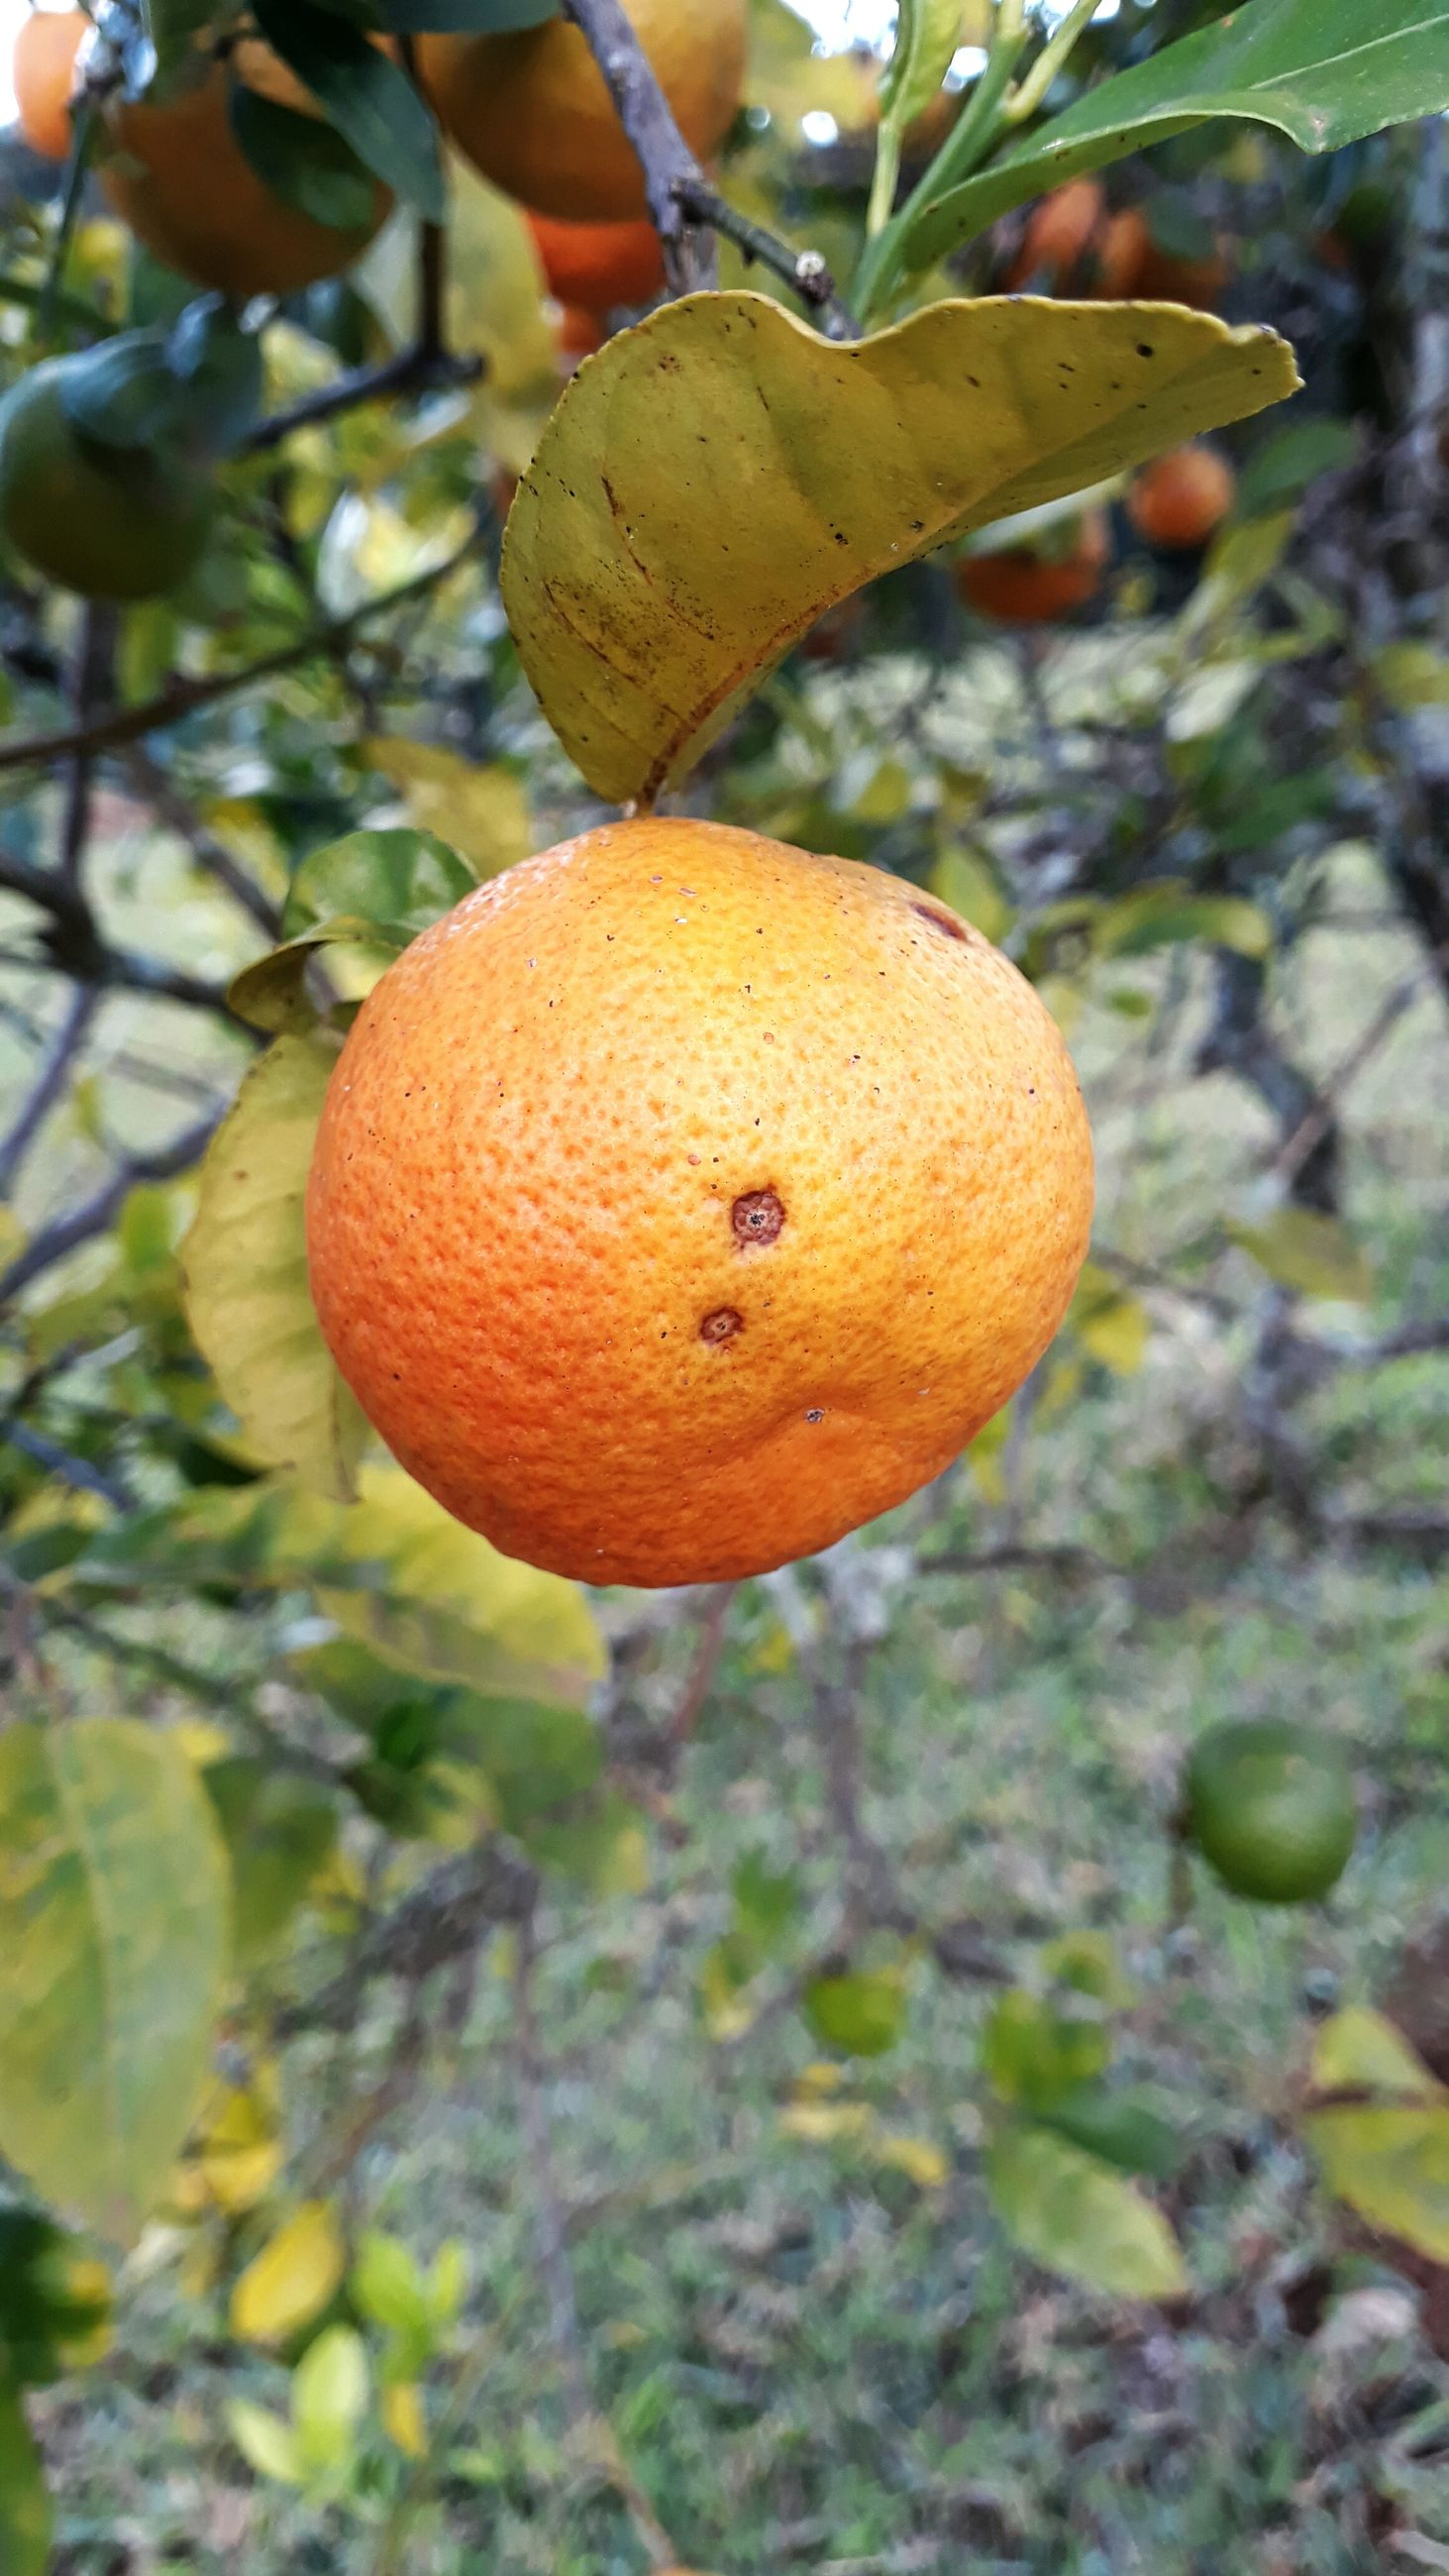 fruit, tree, growth, food and drink, citrus fruit, focus on foreground, day, freshness, food, no people, outdoors, healthy eating, close-up, hanging, leaf, low angle view, nature, branch, beauty in nature